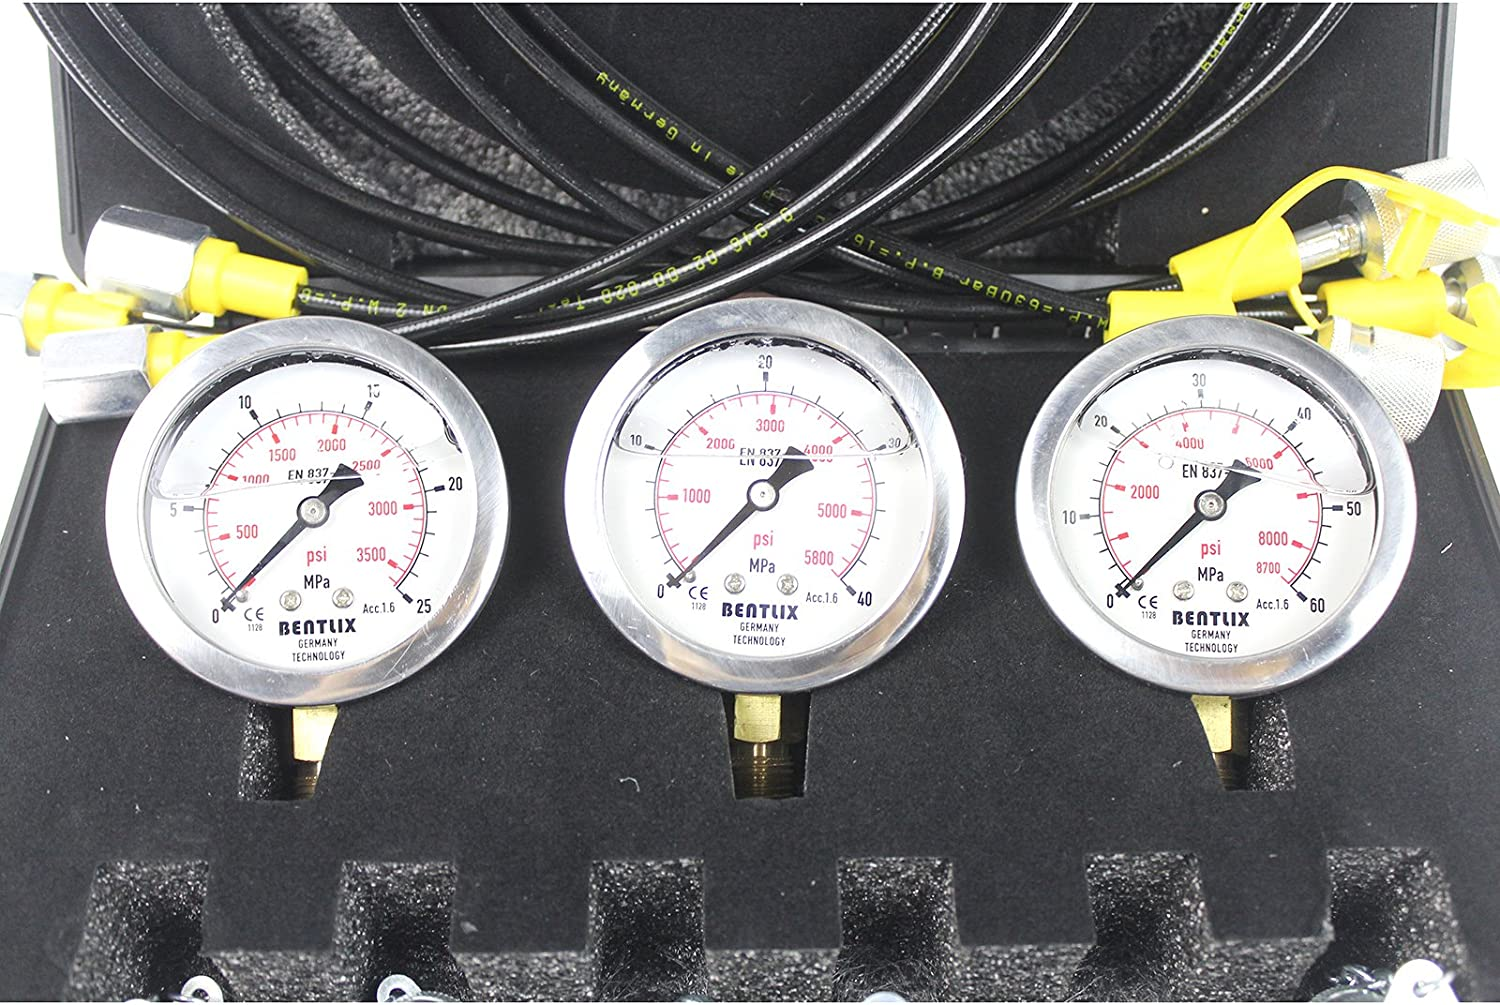 SINOCMP Hydraulic Pressure Gauges Kit Hydraulic Gauge Kit for Komatsu Excavator 4 160cm Long Test Hoses and 4 Pressure Gauges 10 Couplings 2 Year Warranty Lightweight Black Plastic Box 3KG